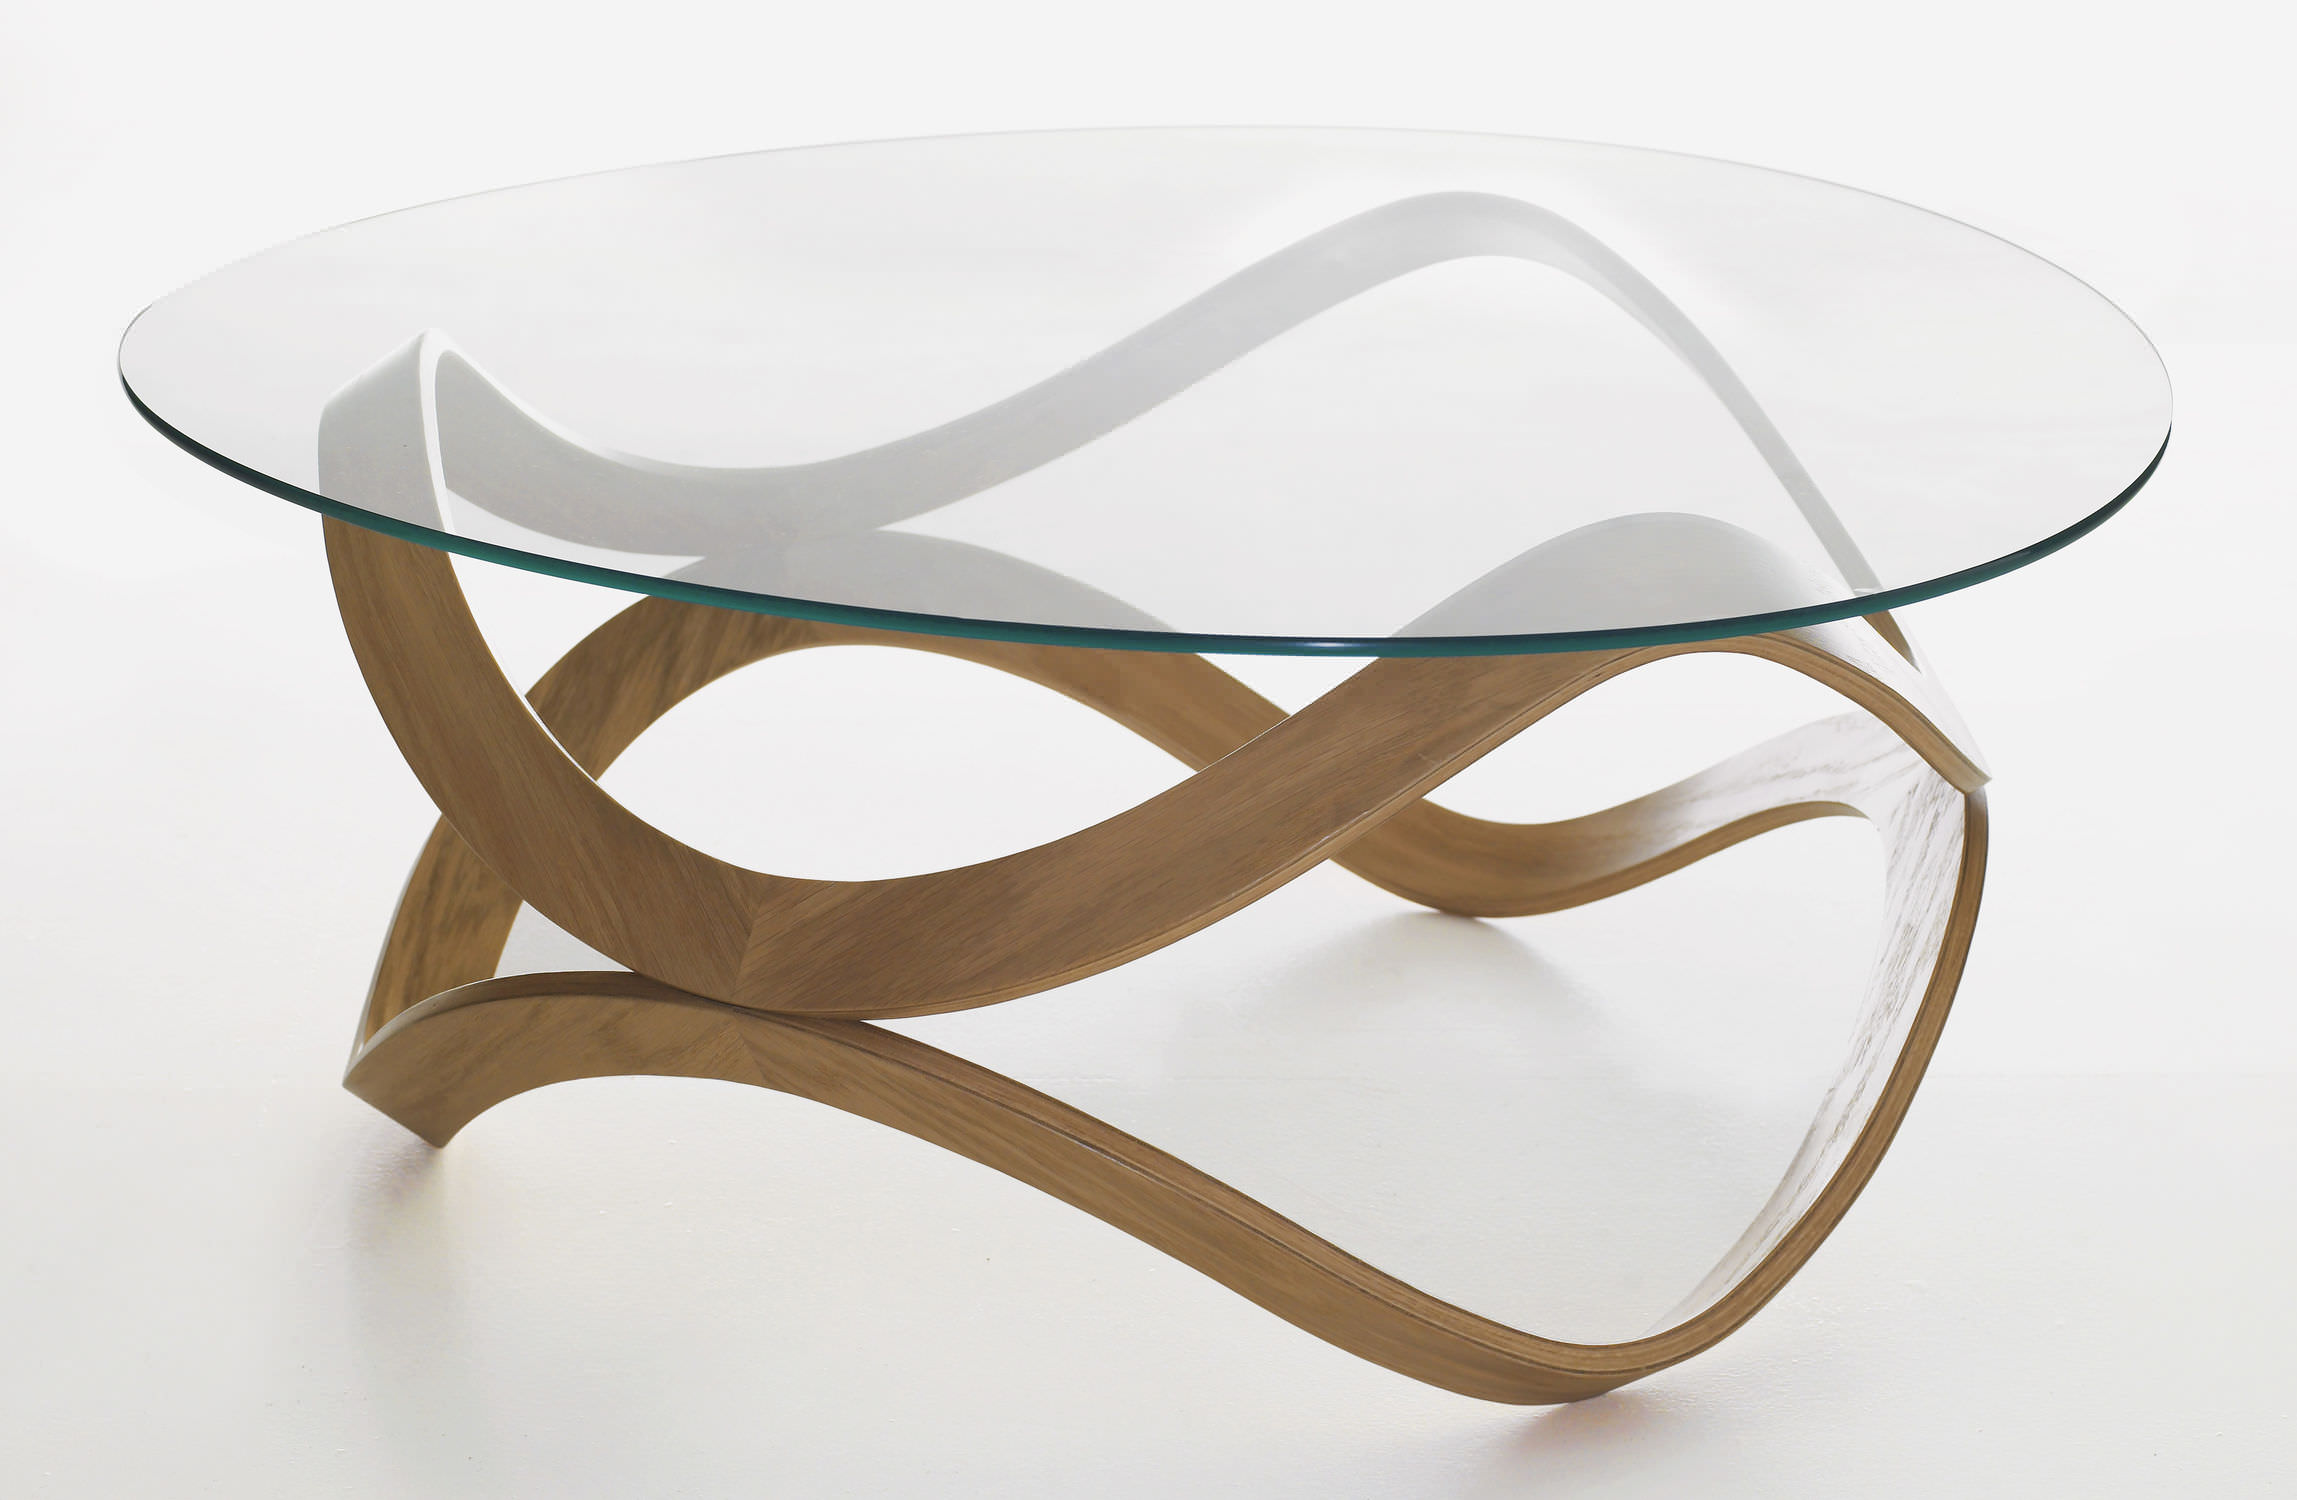 Contemporary Coffee Tables Glass Interesting Contemporary Coffee Table  Glass  Oak  Ash  Newtond.sunaga . Design Decoration